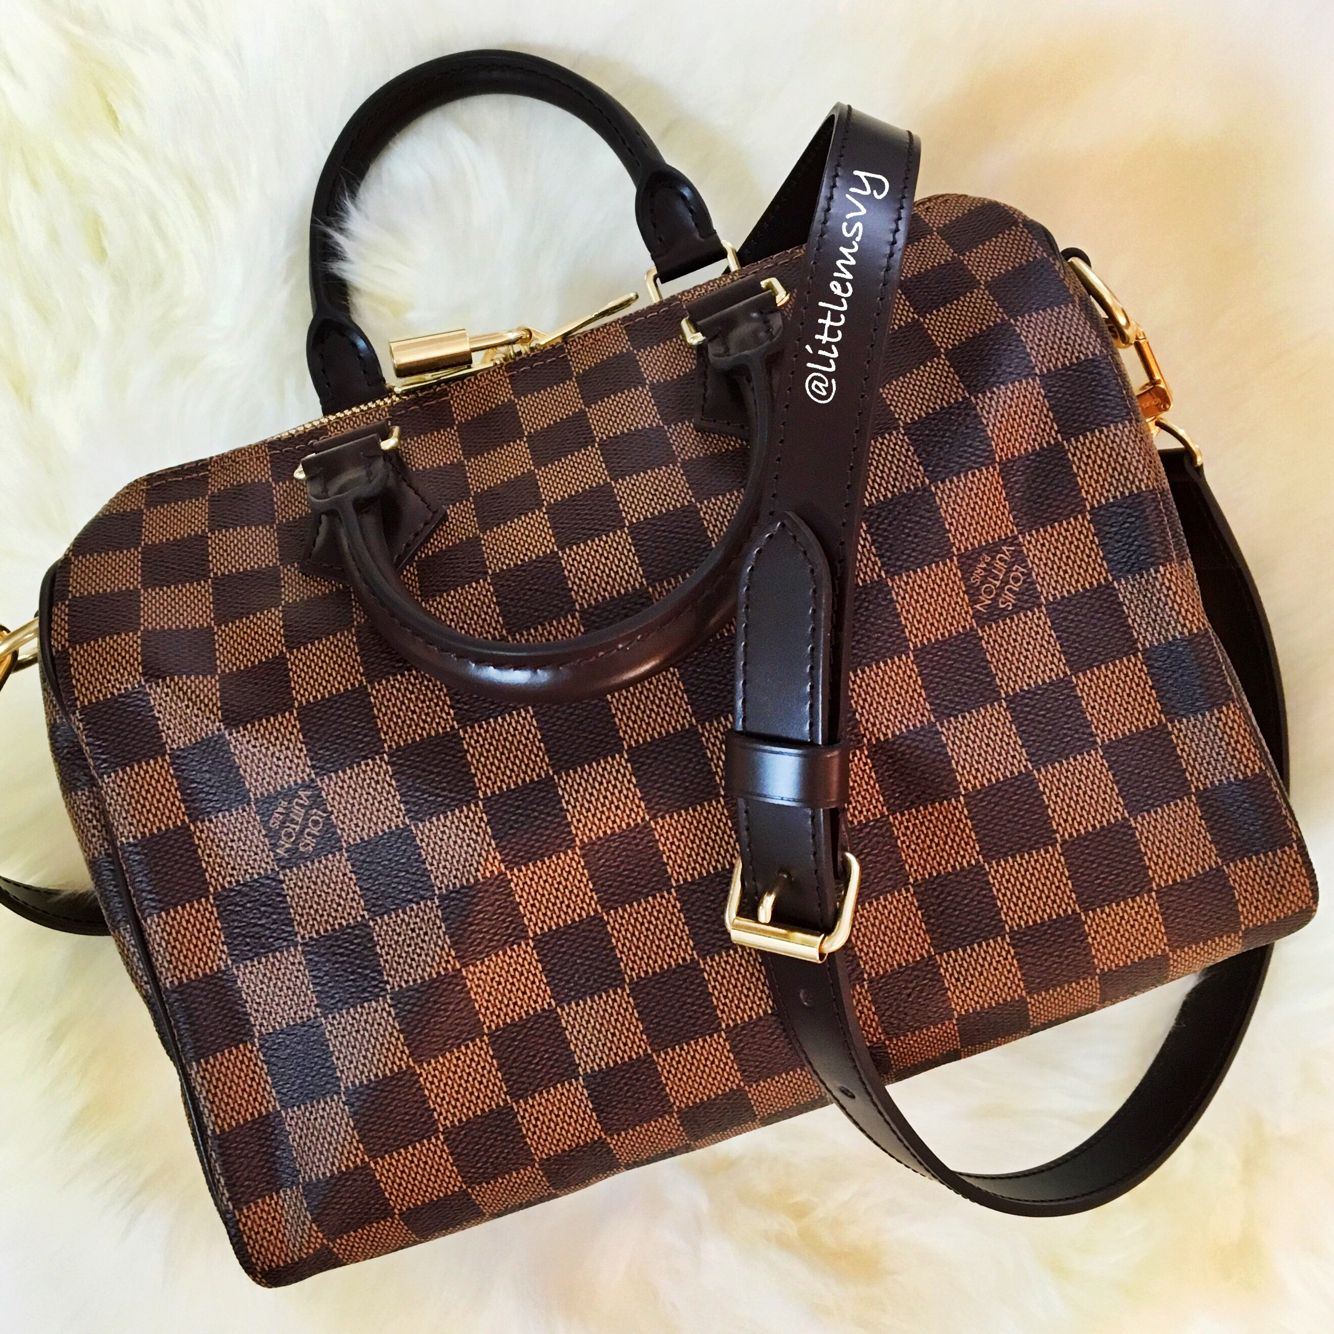 def027f23198 Then Handbag! Louis Vuitton Speedy Bandouliere 25 in Damier Ebene ...